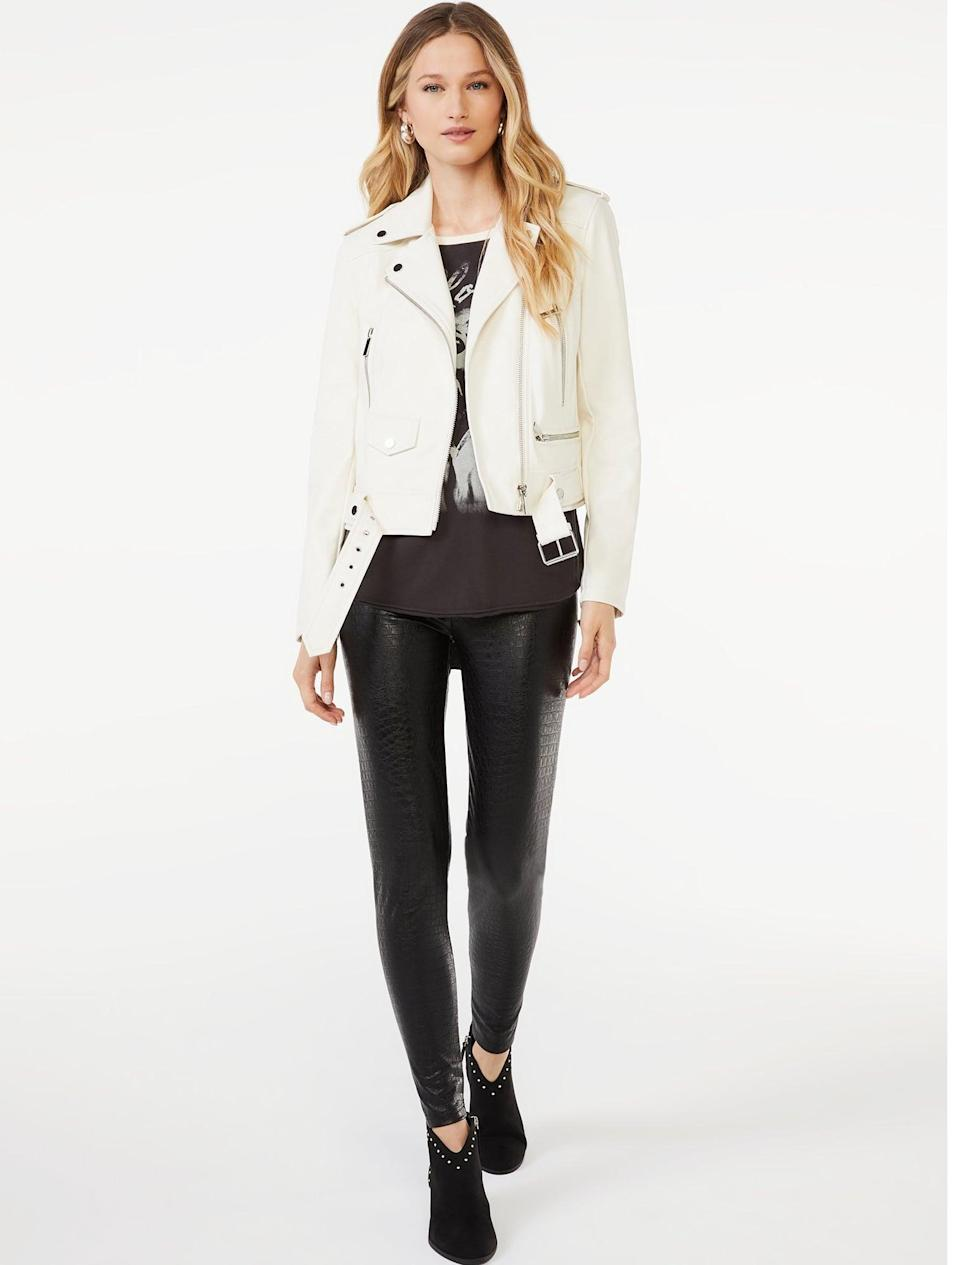 <p>Leggings are a must-have in your fall wardrobe, especially ones that will take your outfit to the next level. Enter the <span>Scoop Women's Faux Leather Embossed Croc Leggings</span> ($22) that <em>look </em>crazy expensive but aren't.</p>